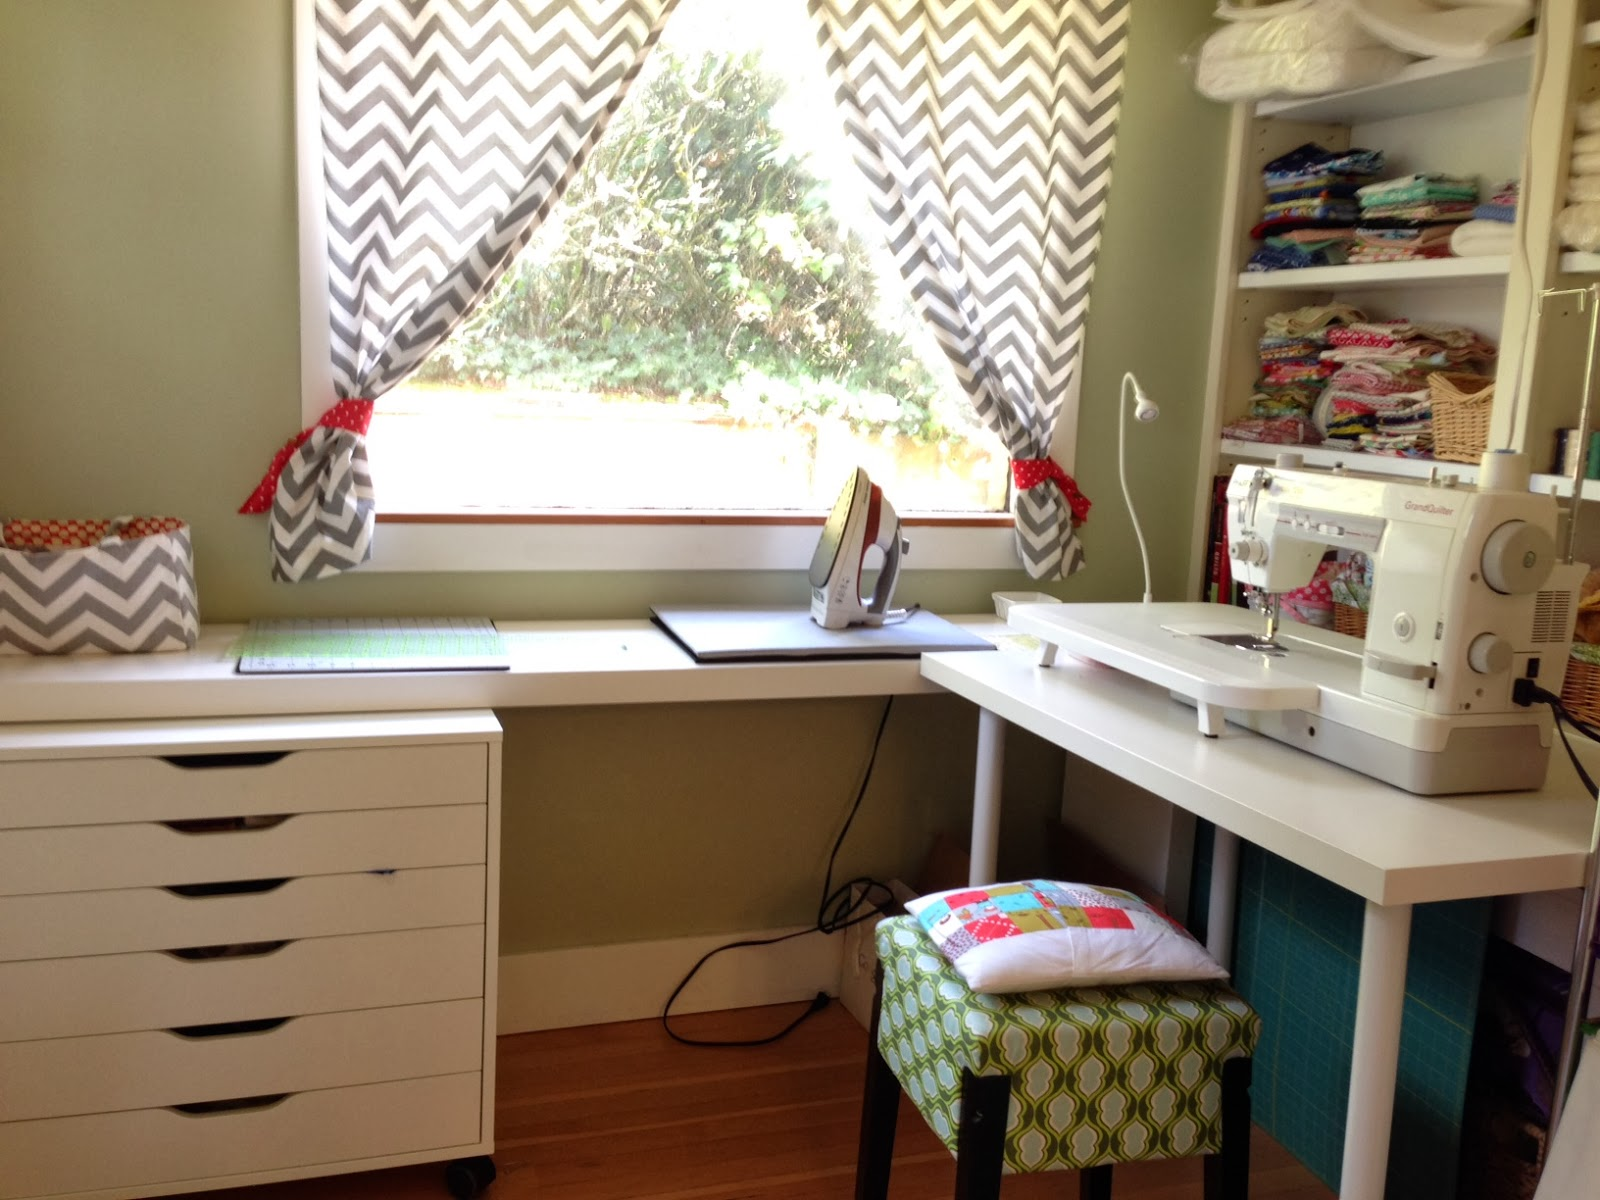 A Tour Of My Humble Sewing Space